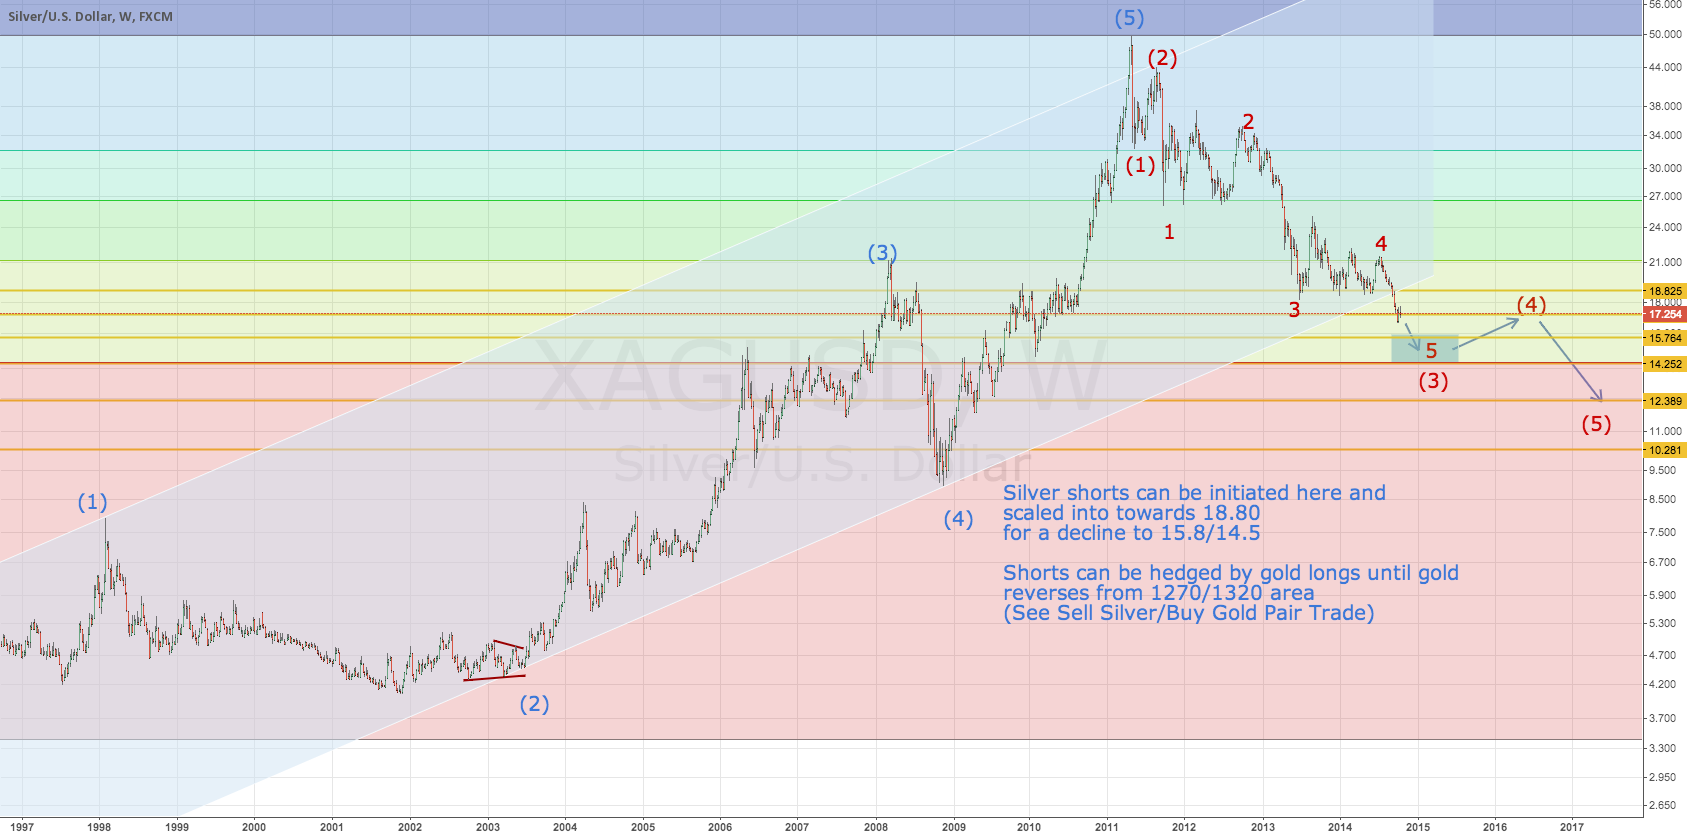 Scale into silver shorts for a decline to 15.8 to 14.2